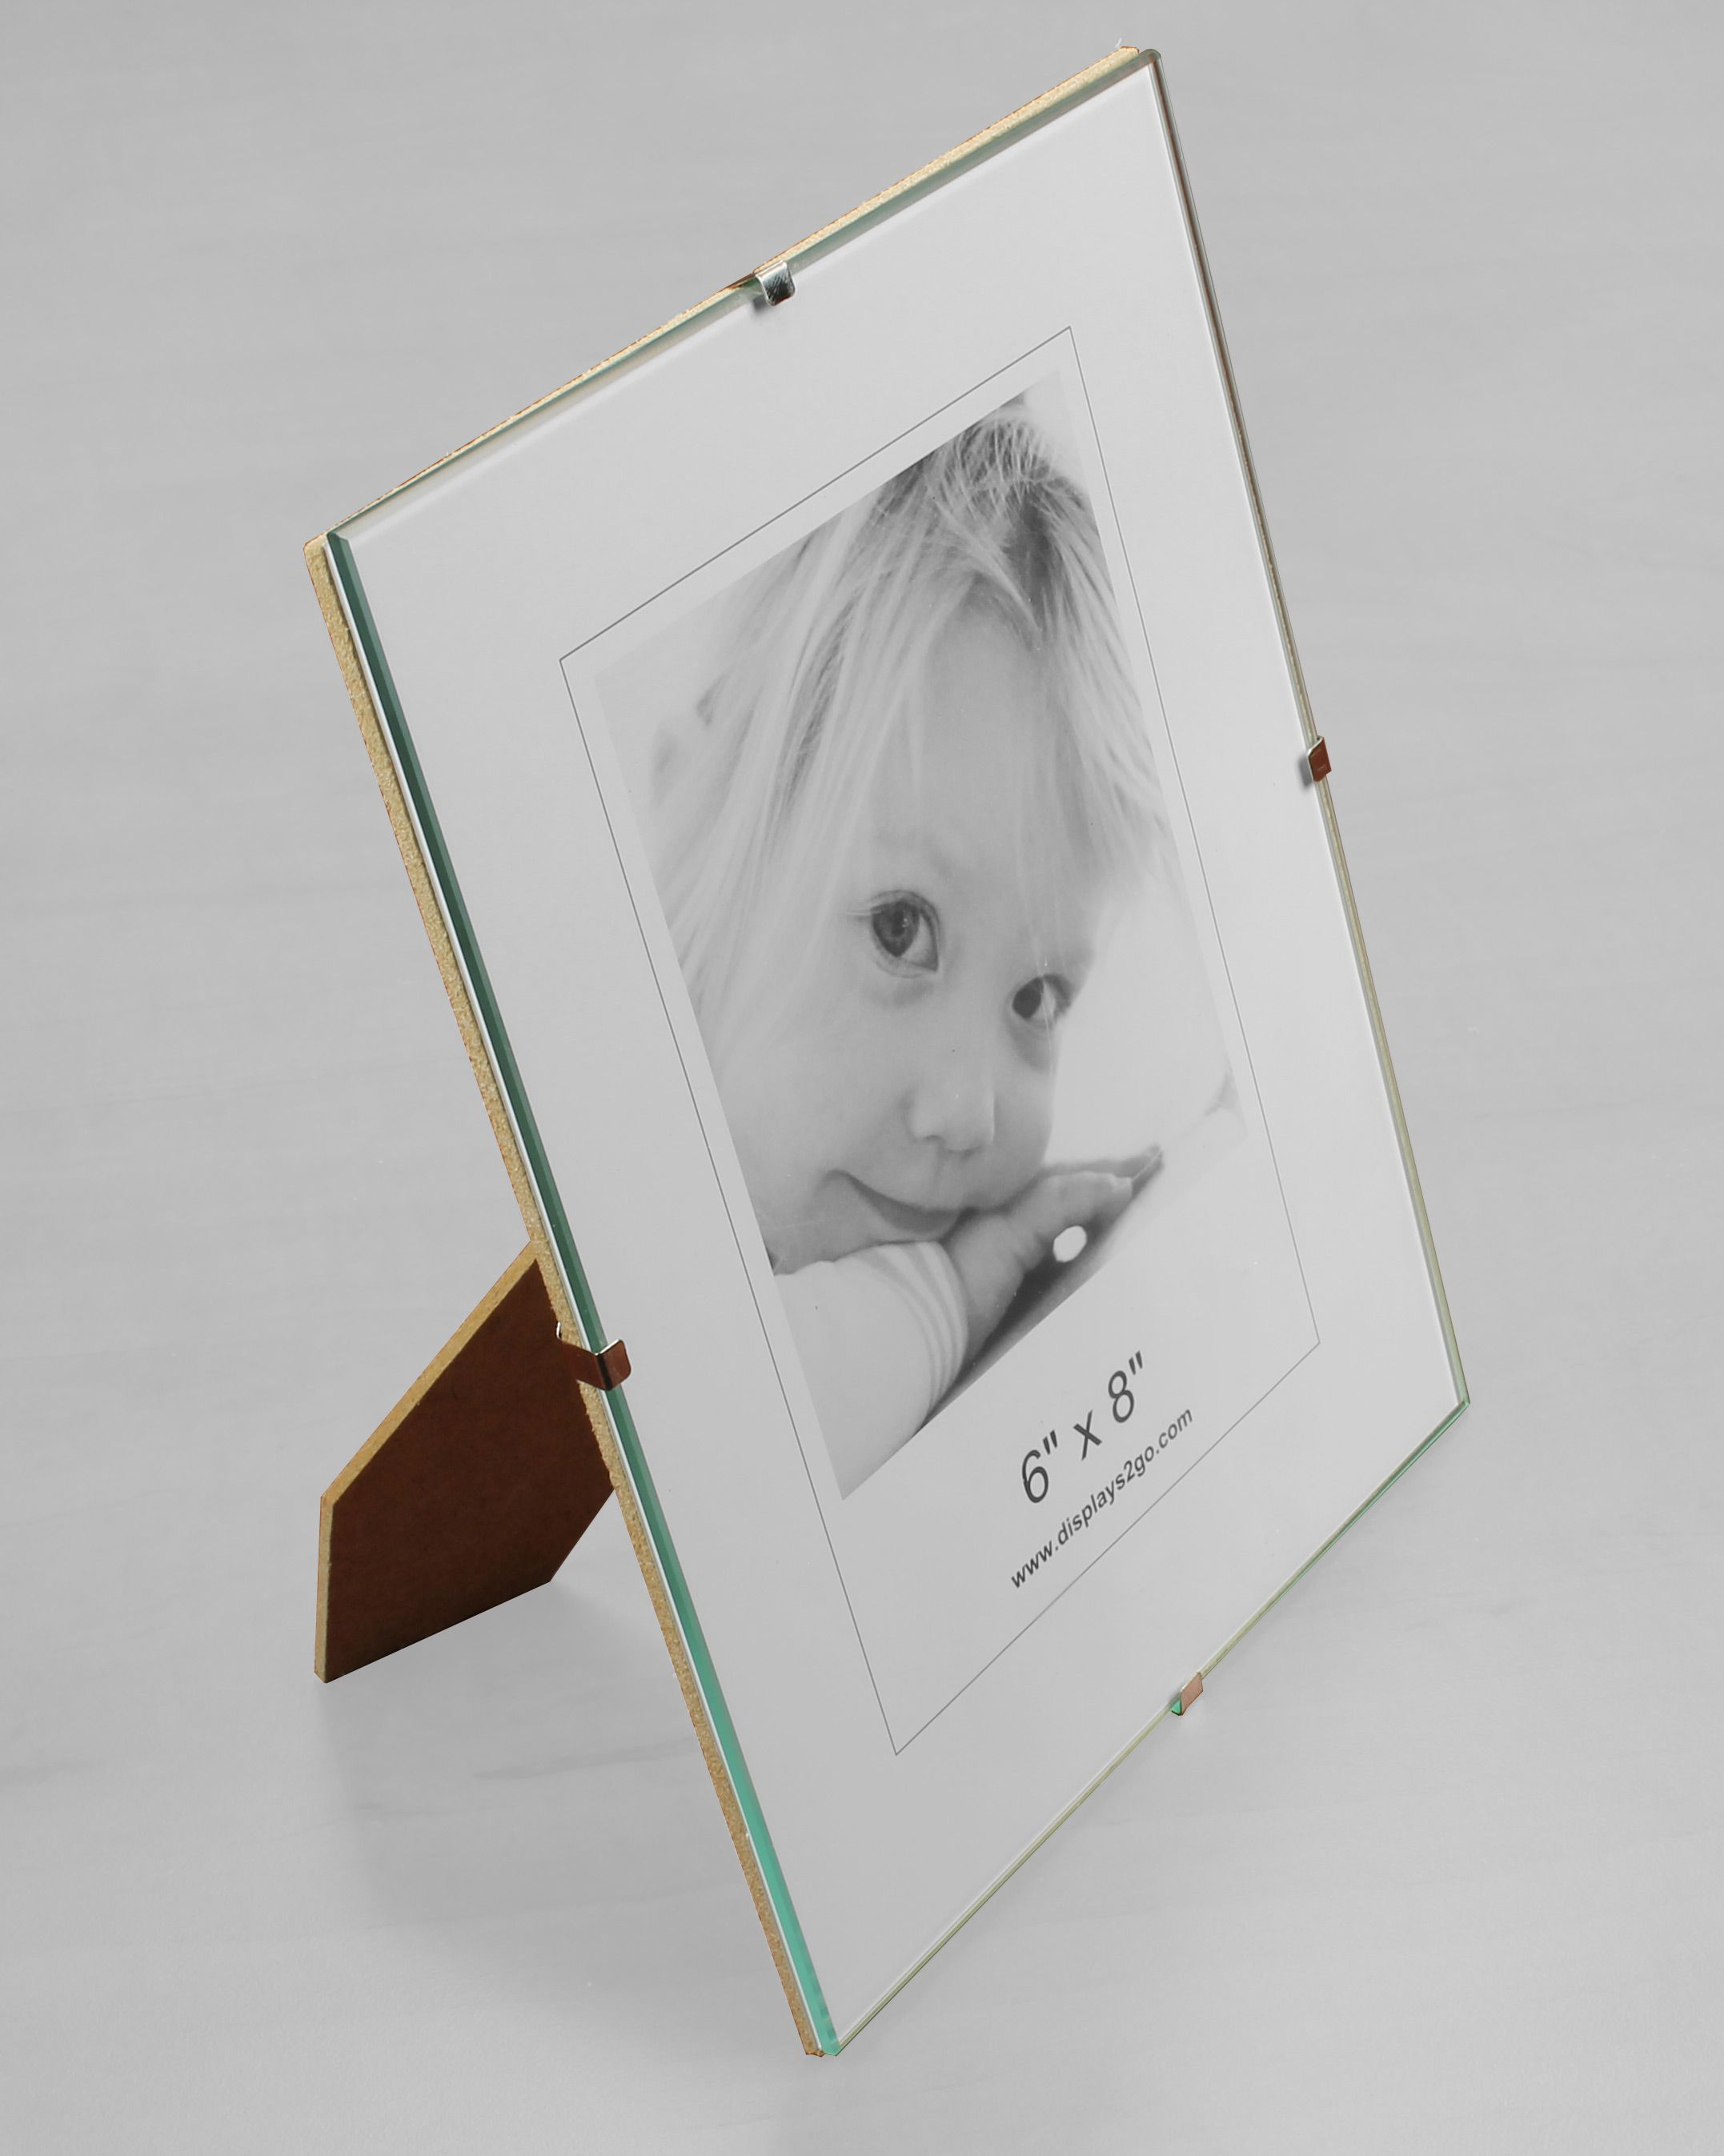 6 X 8 Frameless Picture Frame For Table Or Wall With Side Clips Clear Glass Frameless Picture Frames Clip Picture Frame Picture Frames